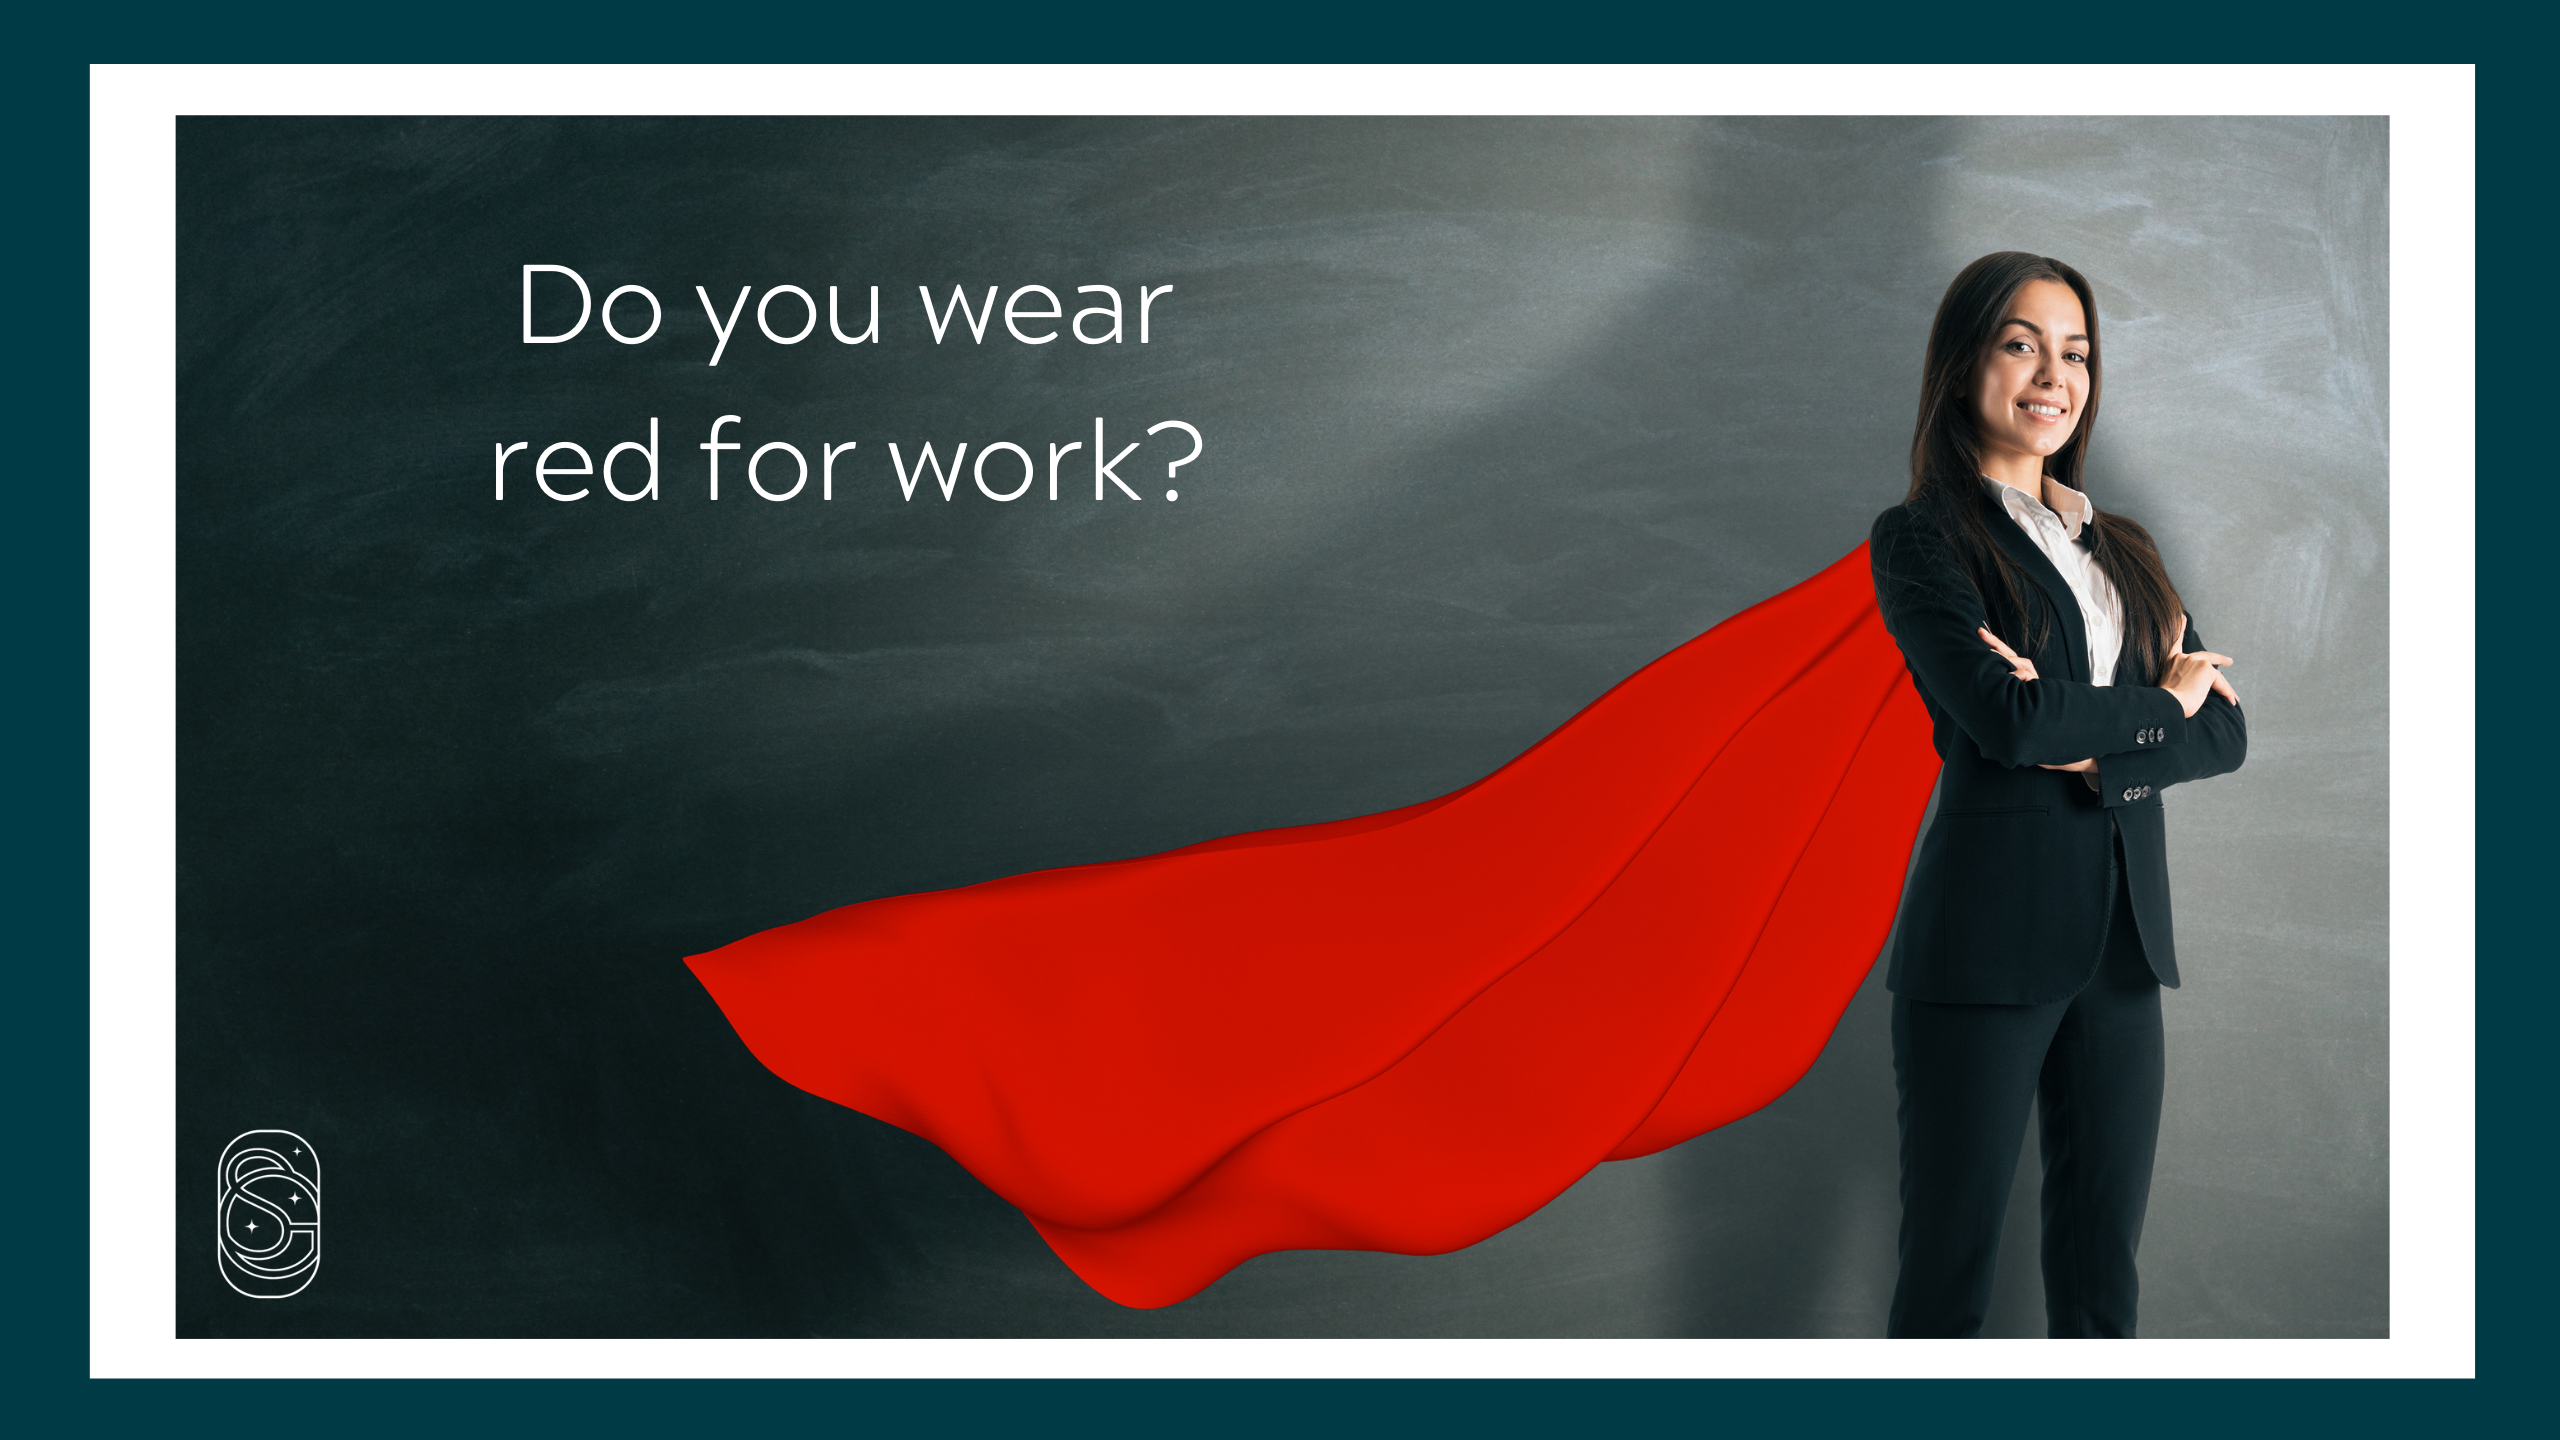 Should you wear red for work?